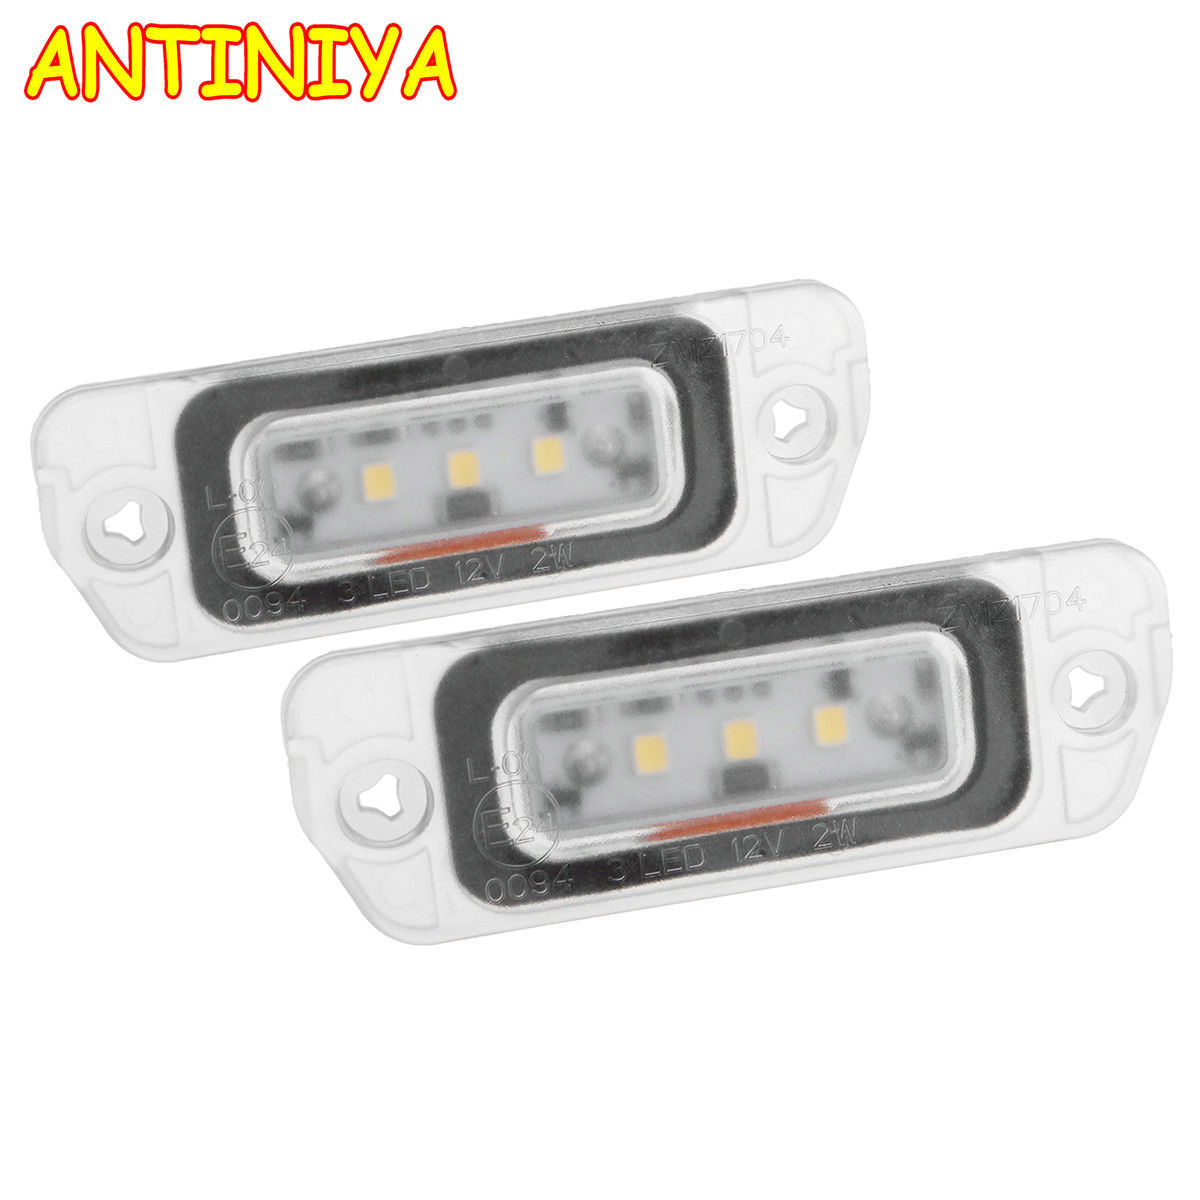 2pcs Error Free LED License Plate Light Lamp A2518200166 Fit for Mercedes X164 W164 W251 GL ML R Class 2006 2007 2008-2012 White ol 6493 xeфигура сова сказка перед сном sealmark